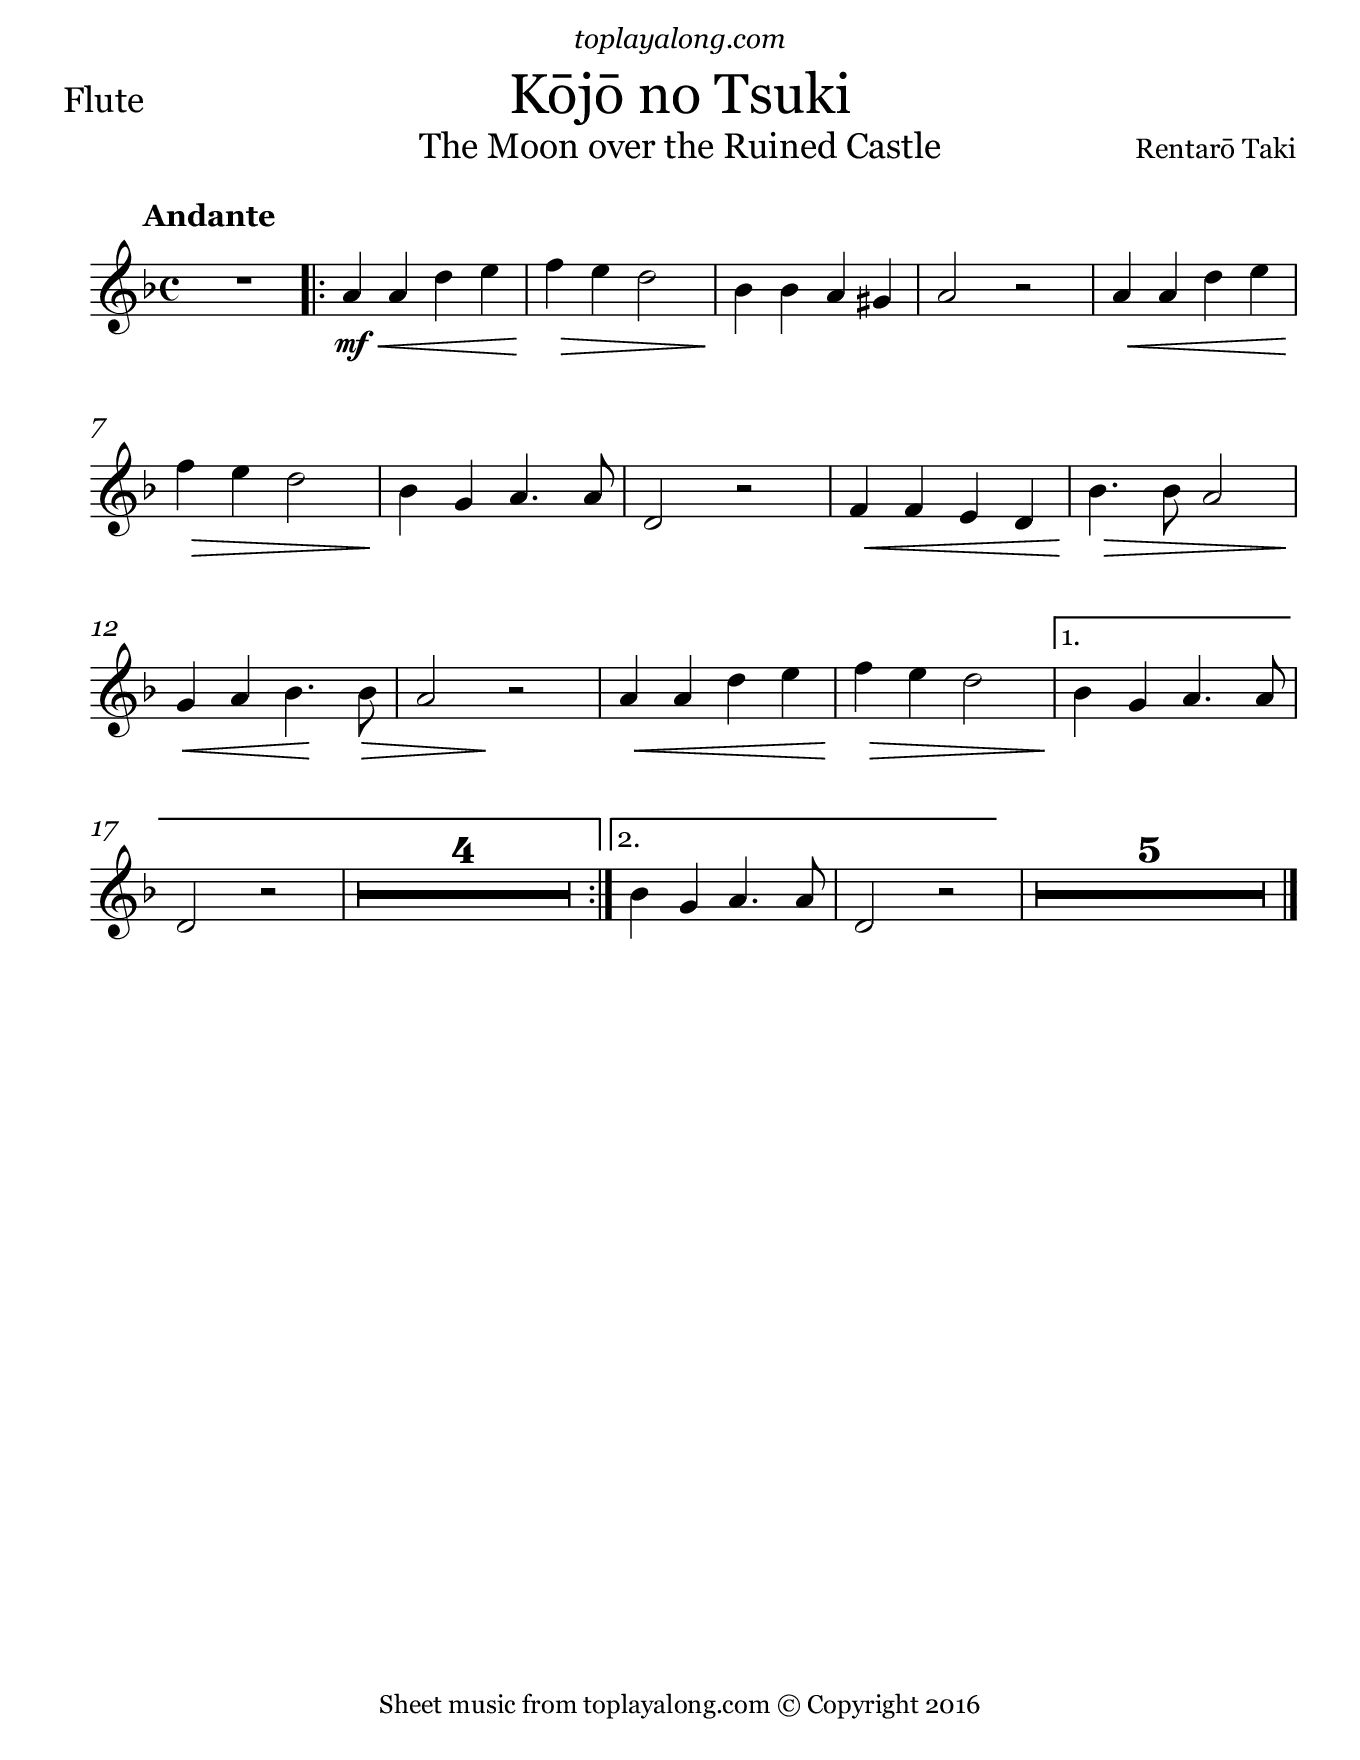 Moon over the Ruined Castle. Sheet music for Flute, page 1.